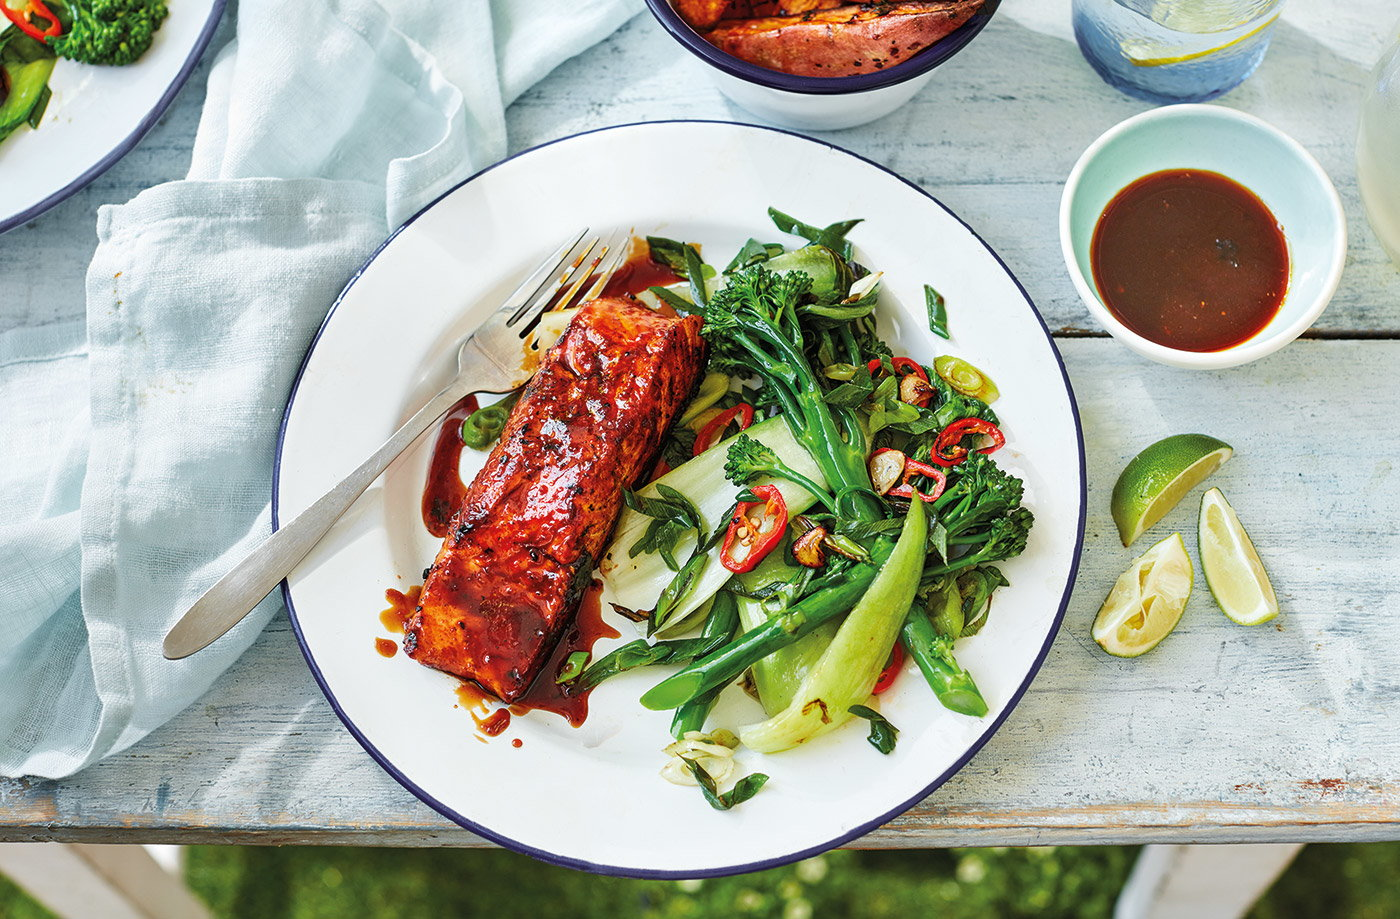 Rum-glazed salmon with wedges and chilli greens  recipe